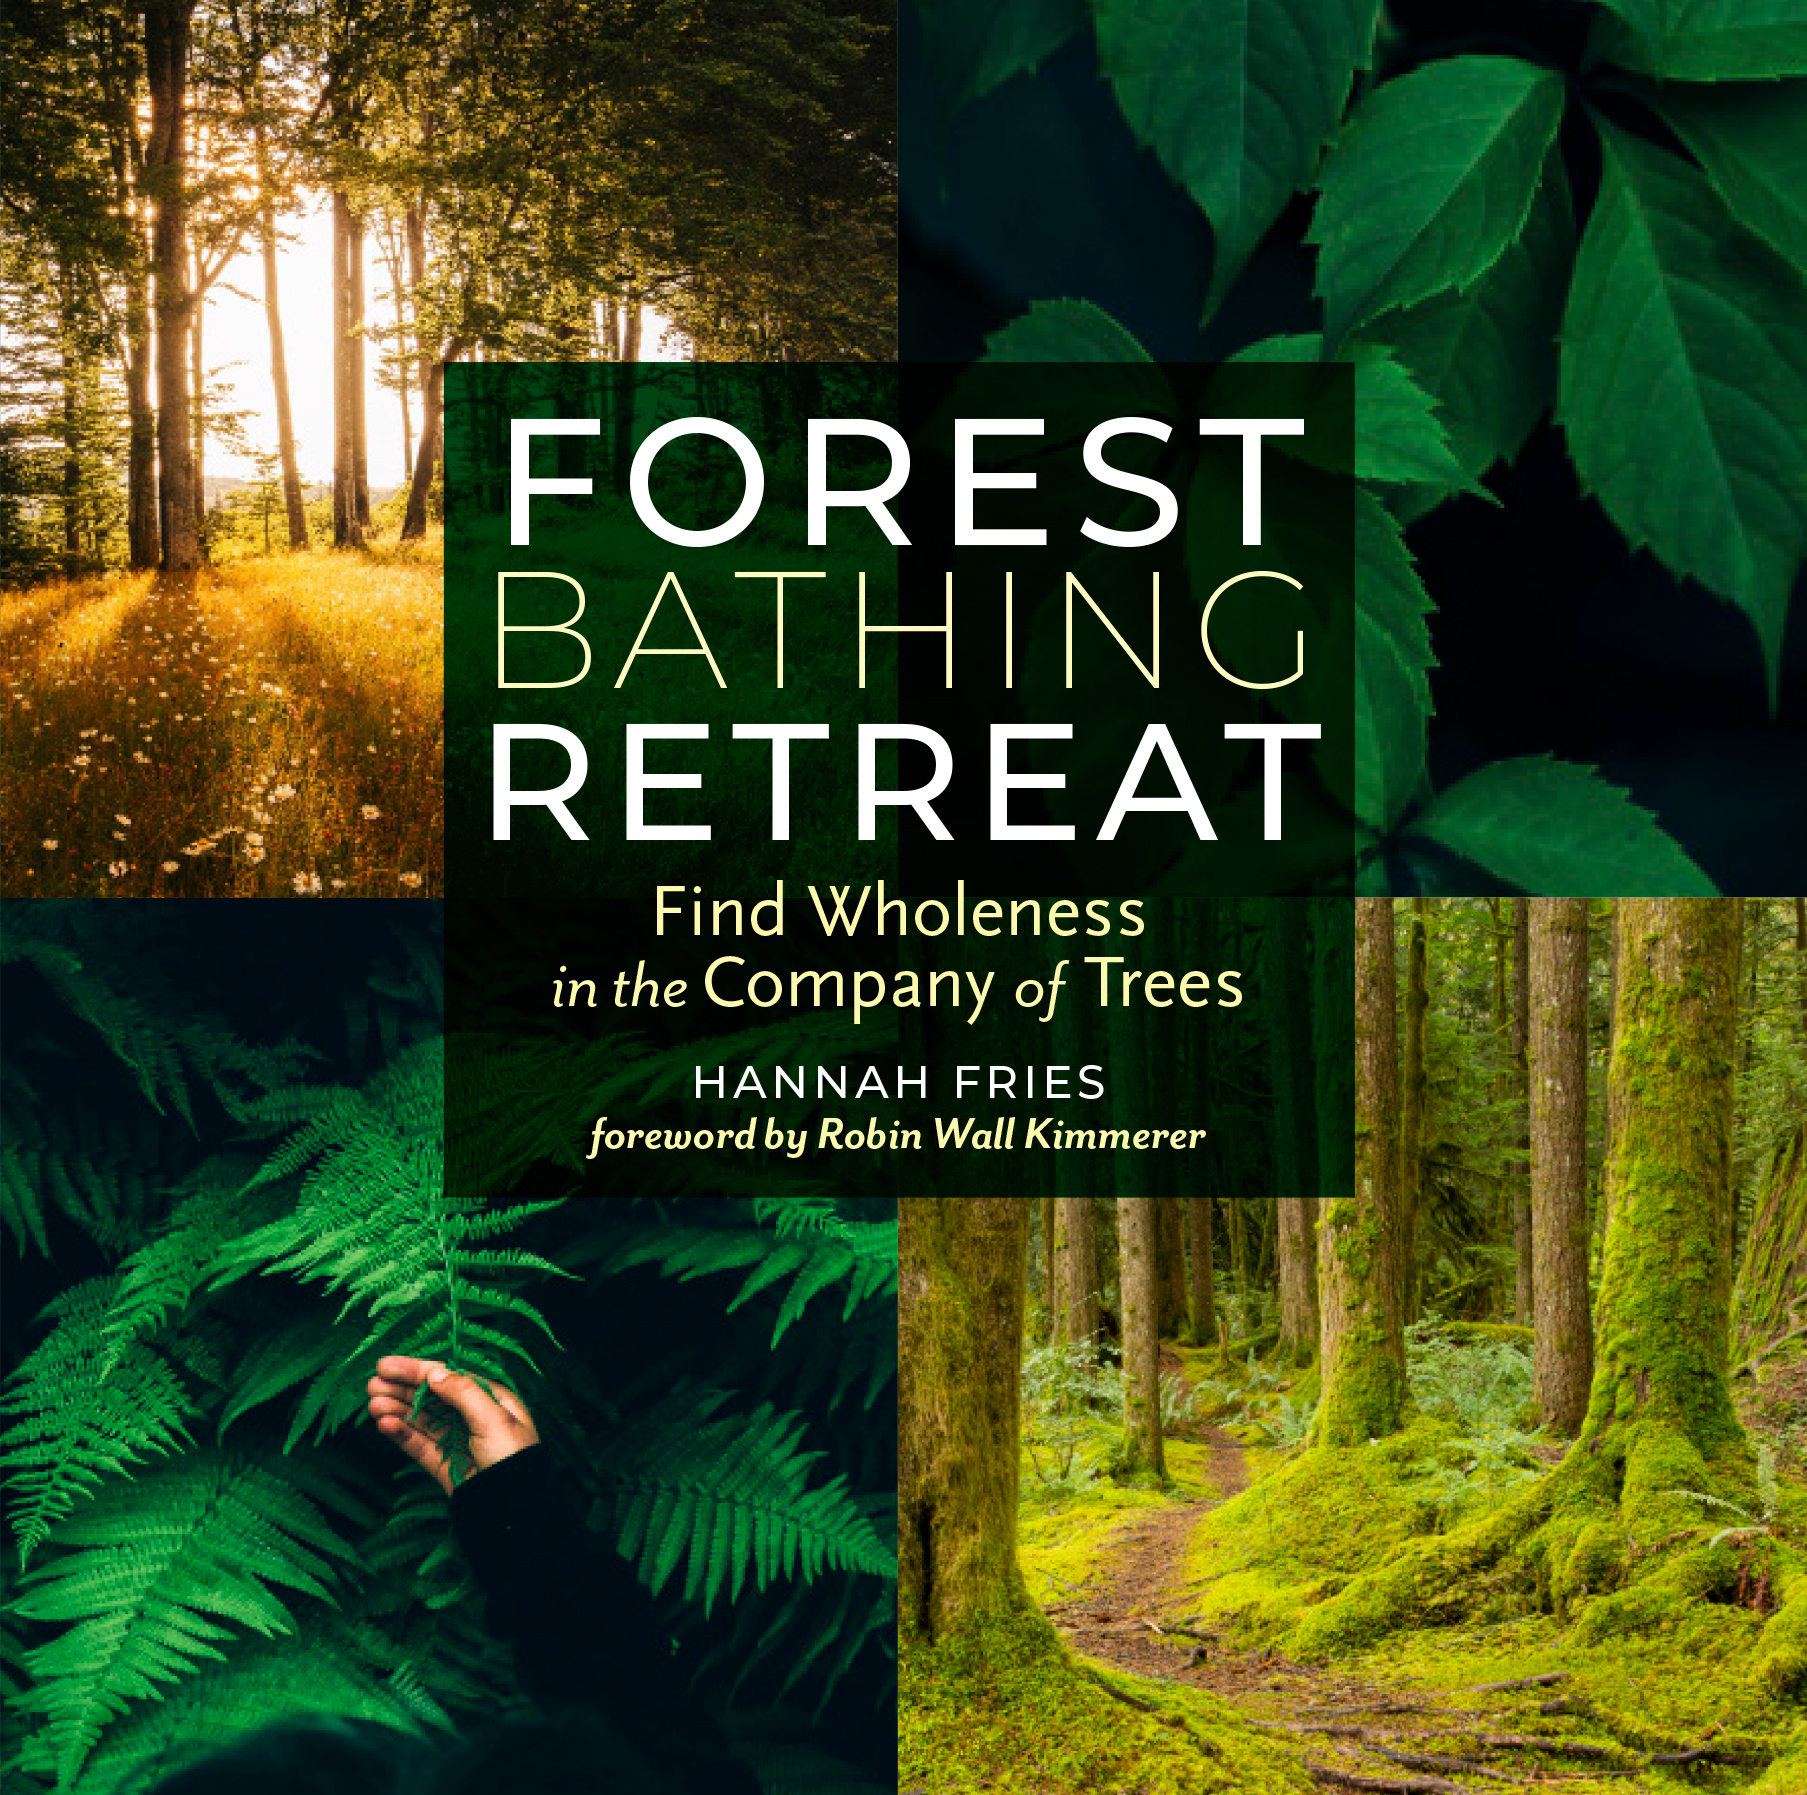 Forest Bathing Retreat Find Wholeness in the Company of Trees - Hannah Fries